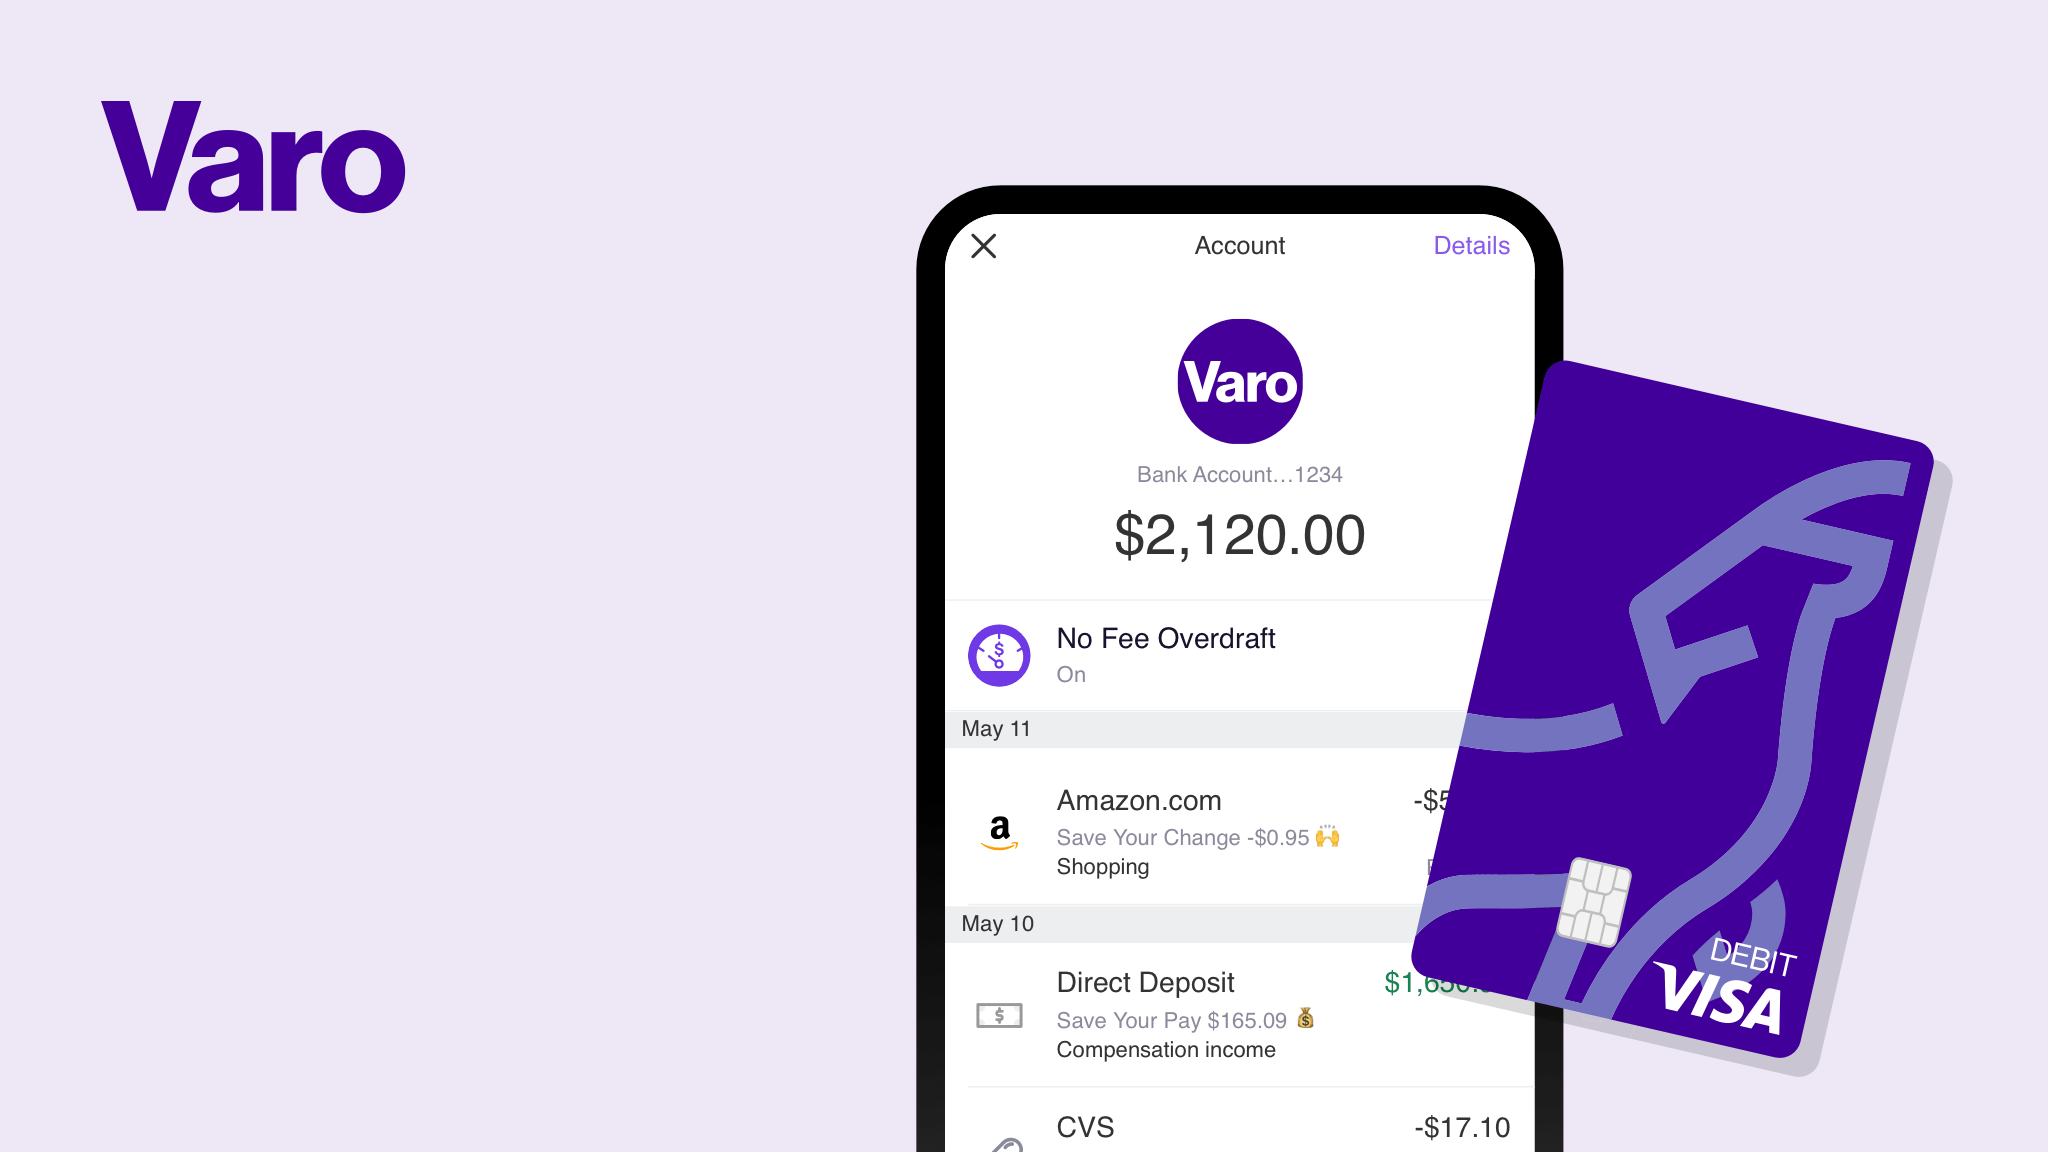 Mobile banking with Varo's no fee overdraft and a debit card